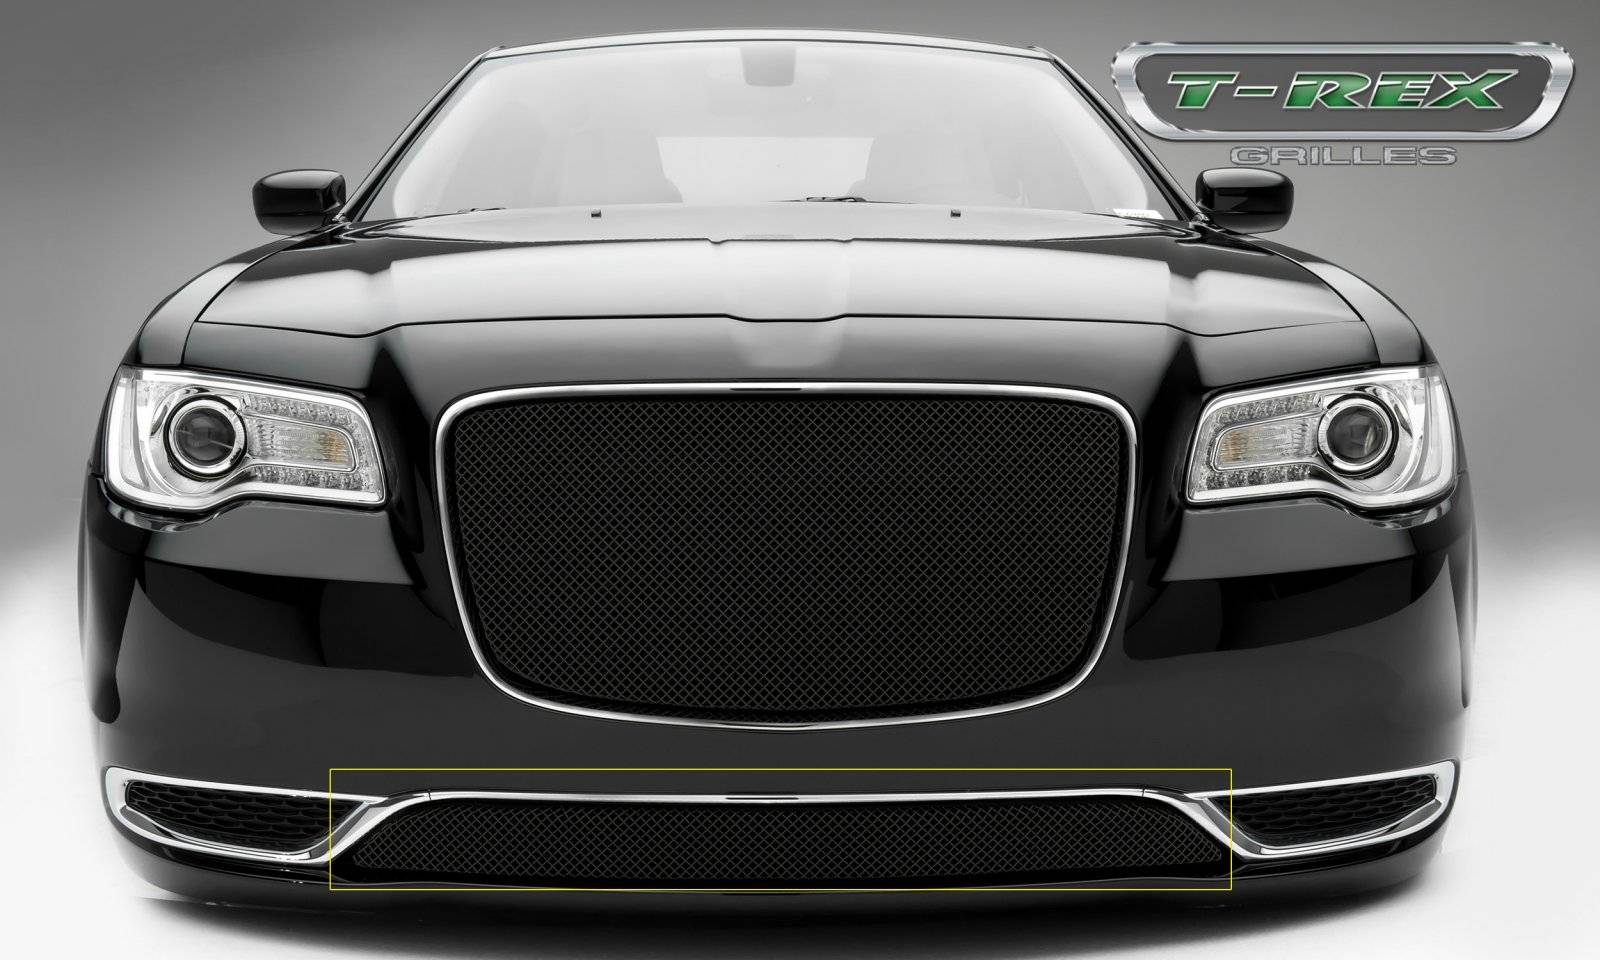 T-REX Chrysler 300 - Sport Series - Bumper Grille Overlay  with Black Powder Coat Finish - Pt # 47436